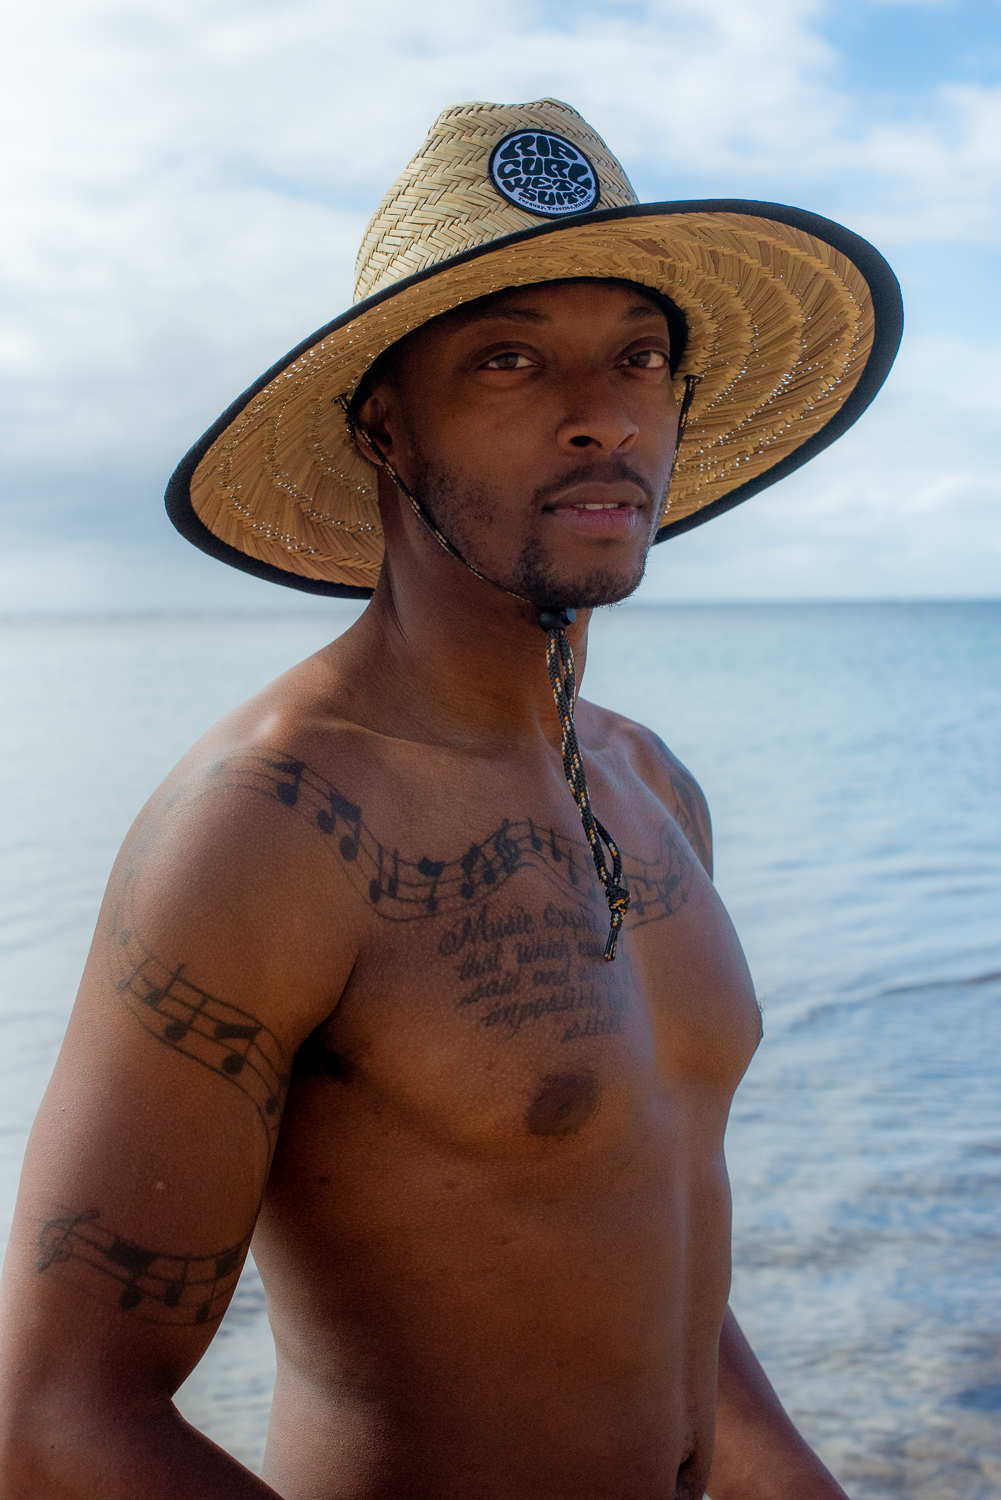 Headshot of shirtless guy with tattoos and beach hat